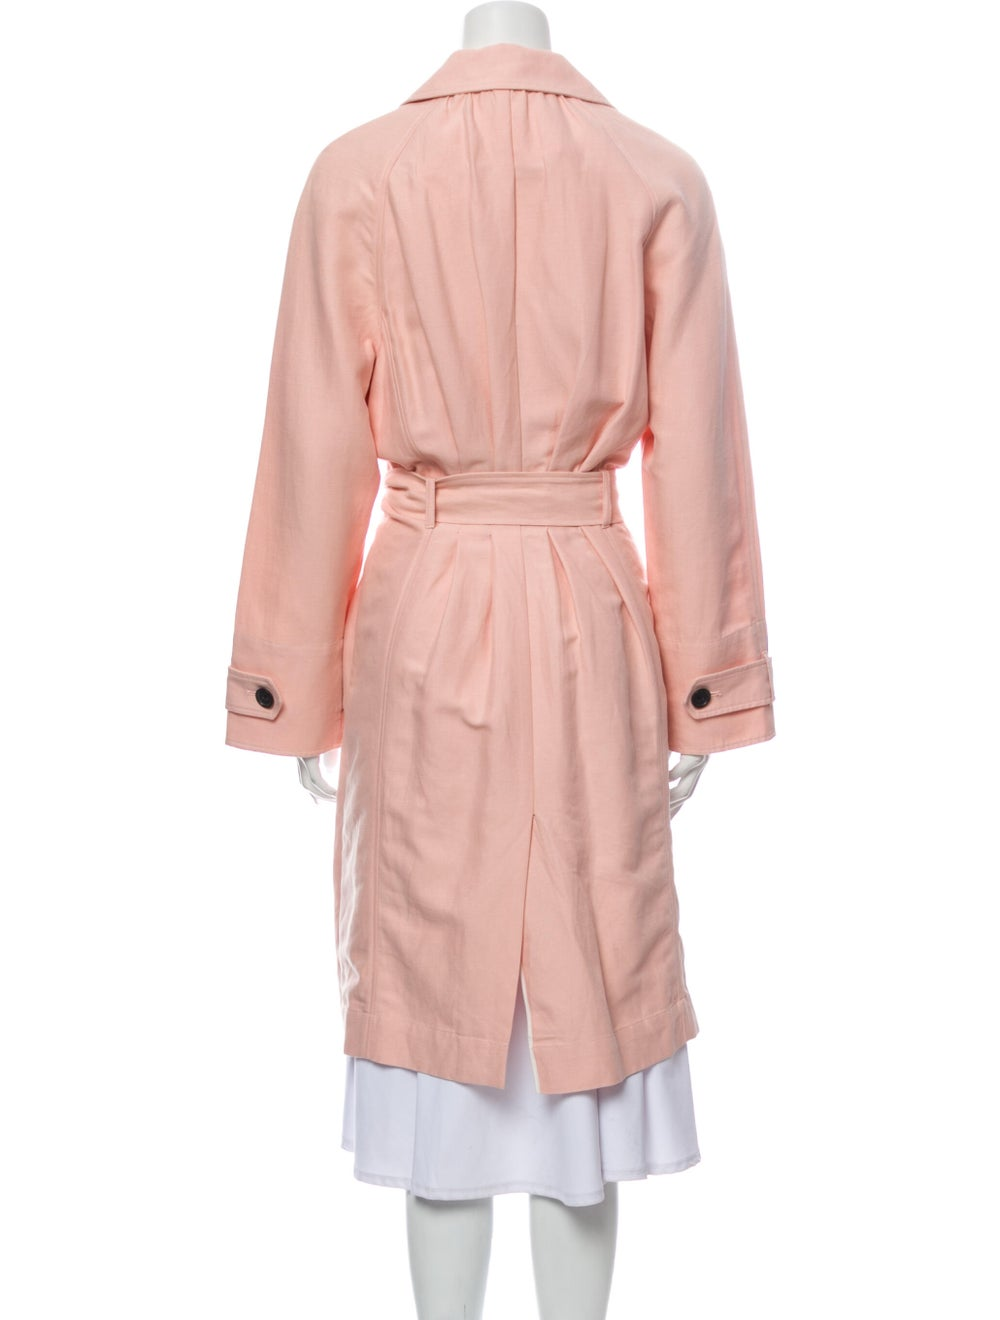 Joie Trench Coat Pink - image 3